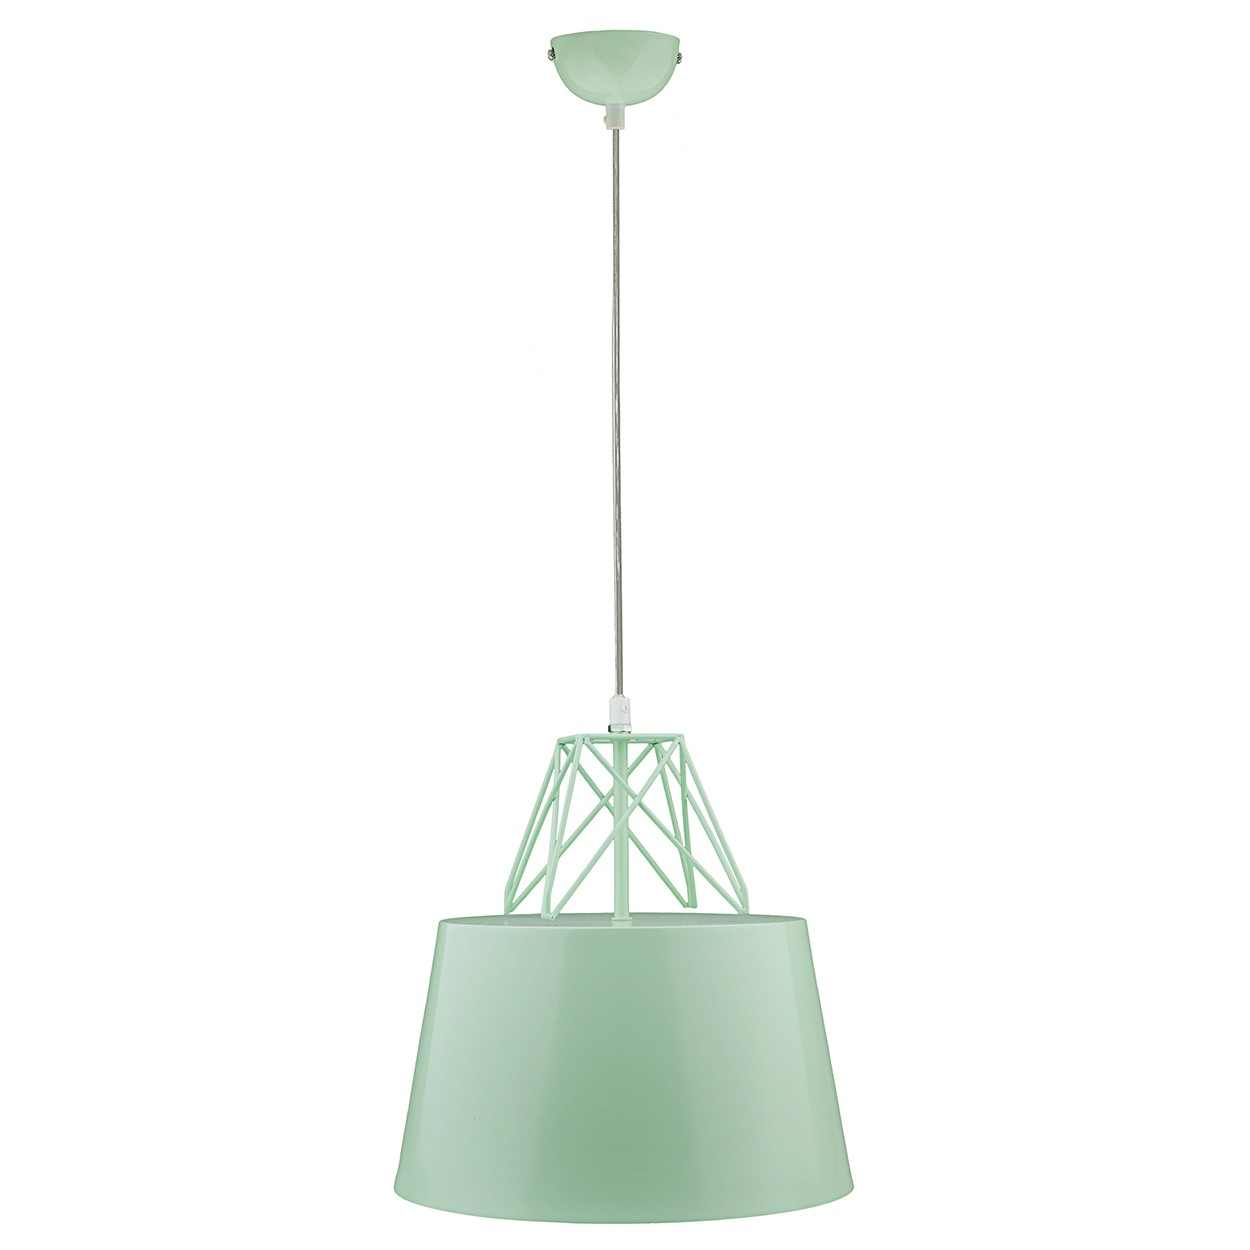 Kaelan Iron Pendant Light, Mint